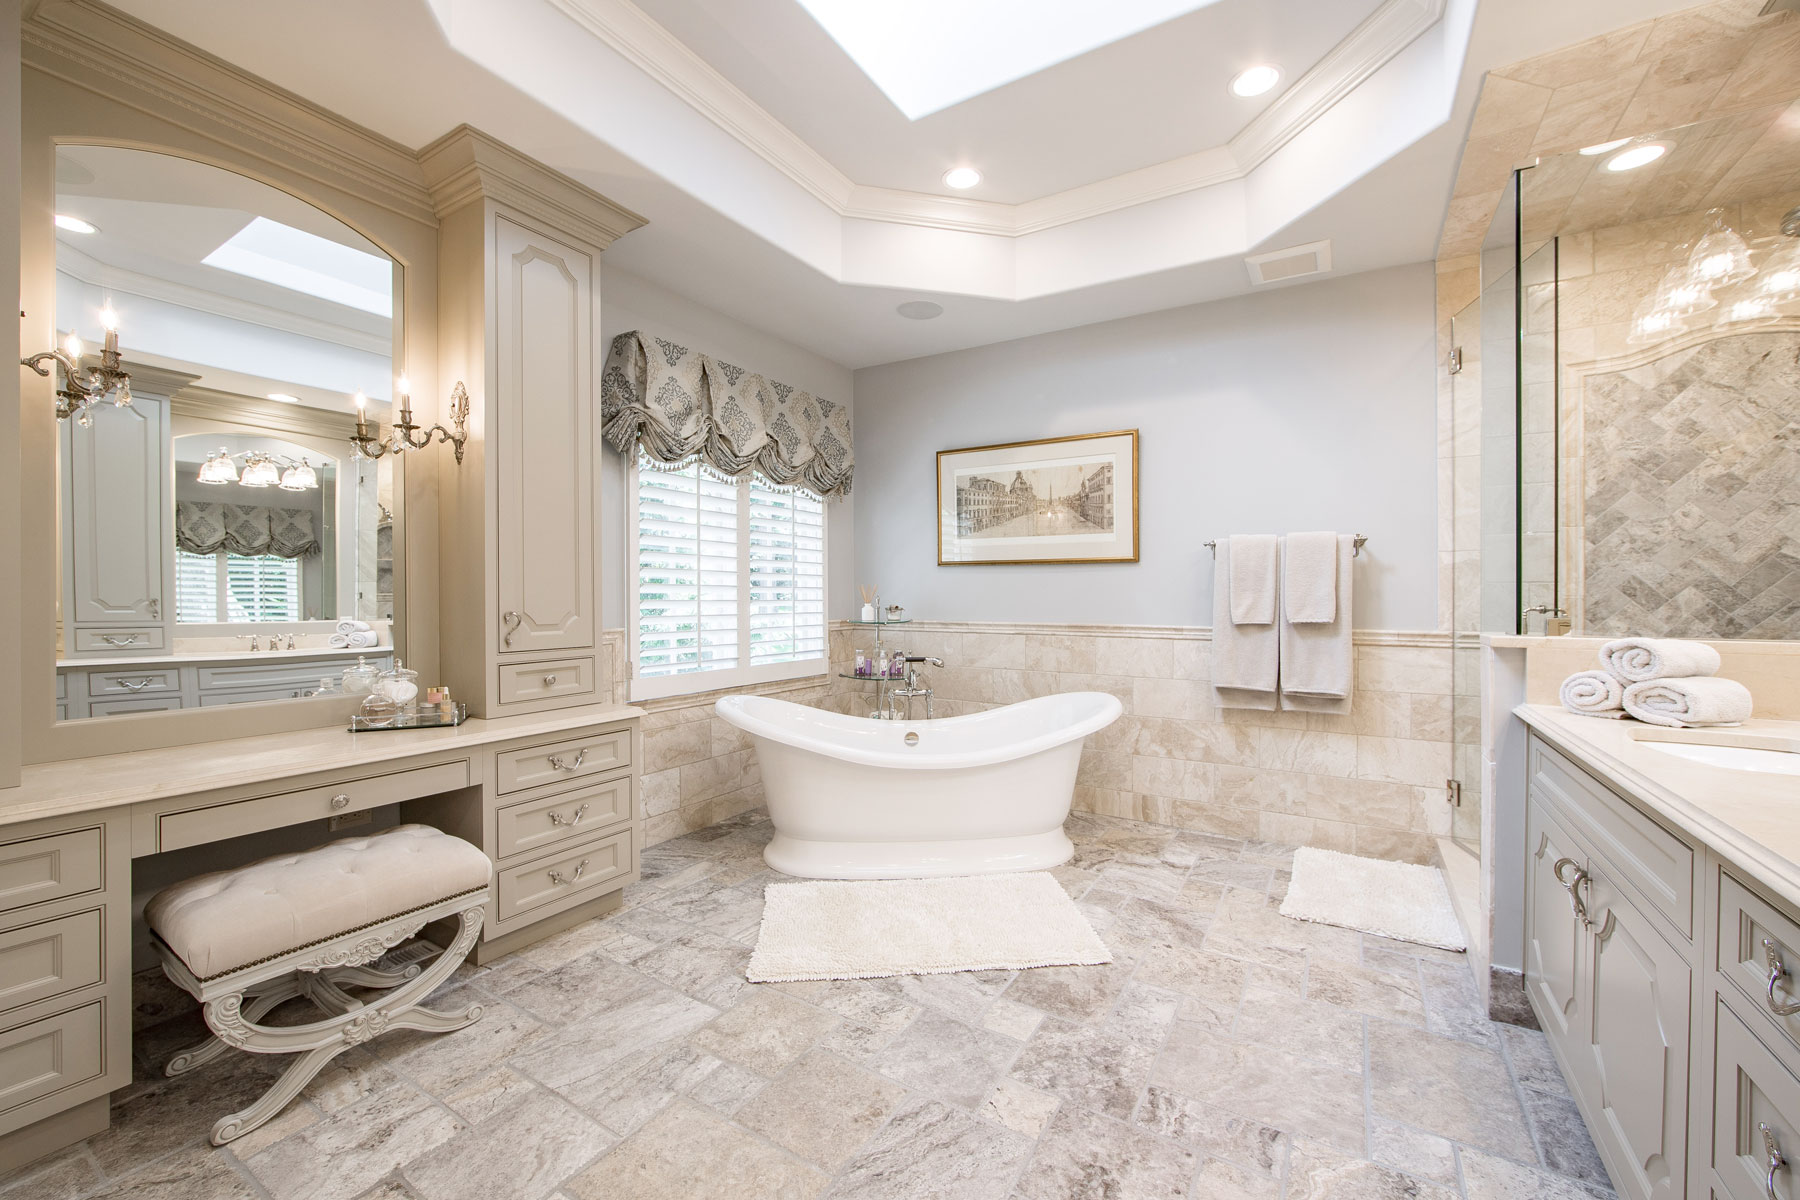 Traditional Bathroom Remodel luxury-traditional-bathroom-remodel-4